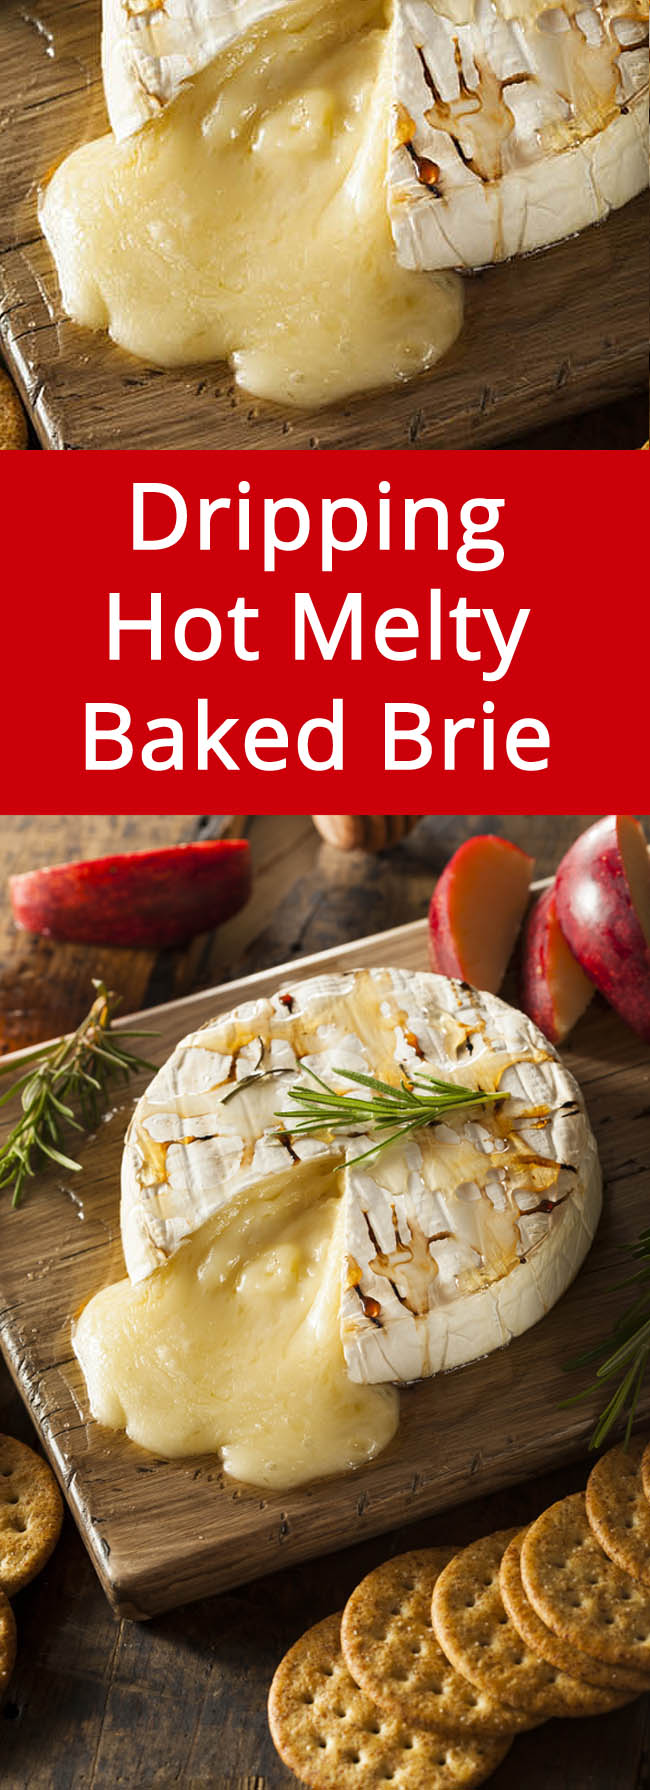 Easy Baked Brie With Honey Appetizer Recipe | MelanieCooks.com